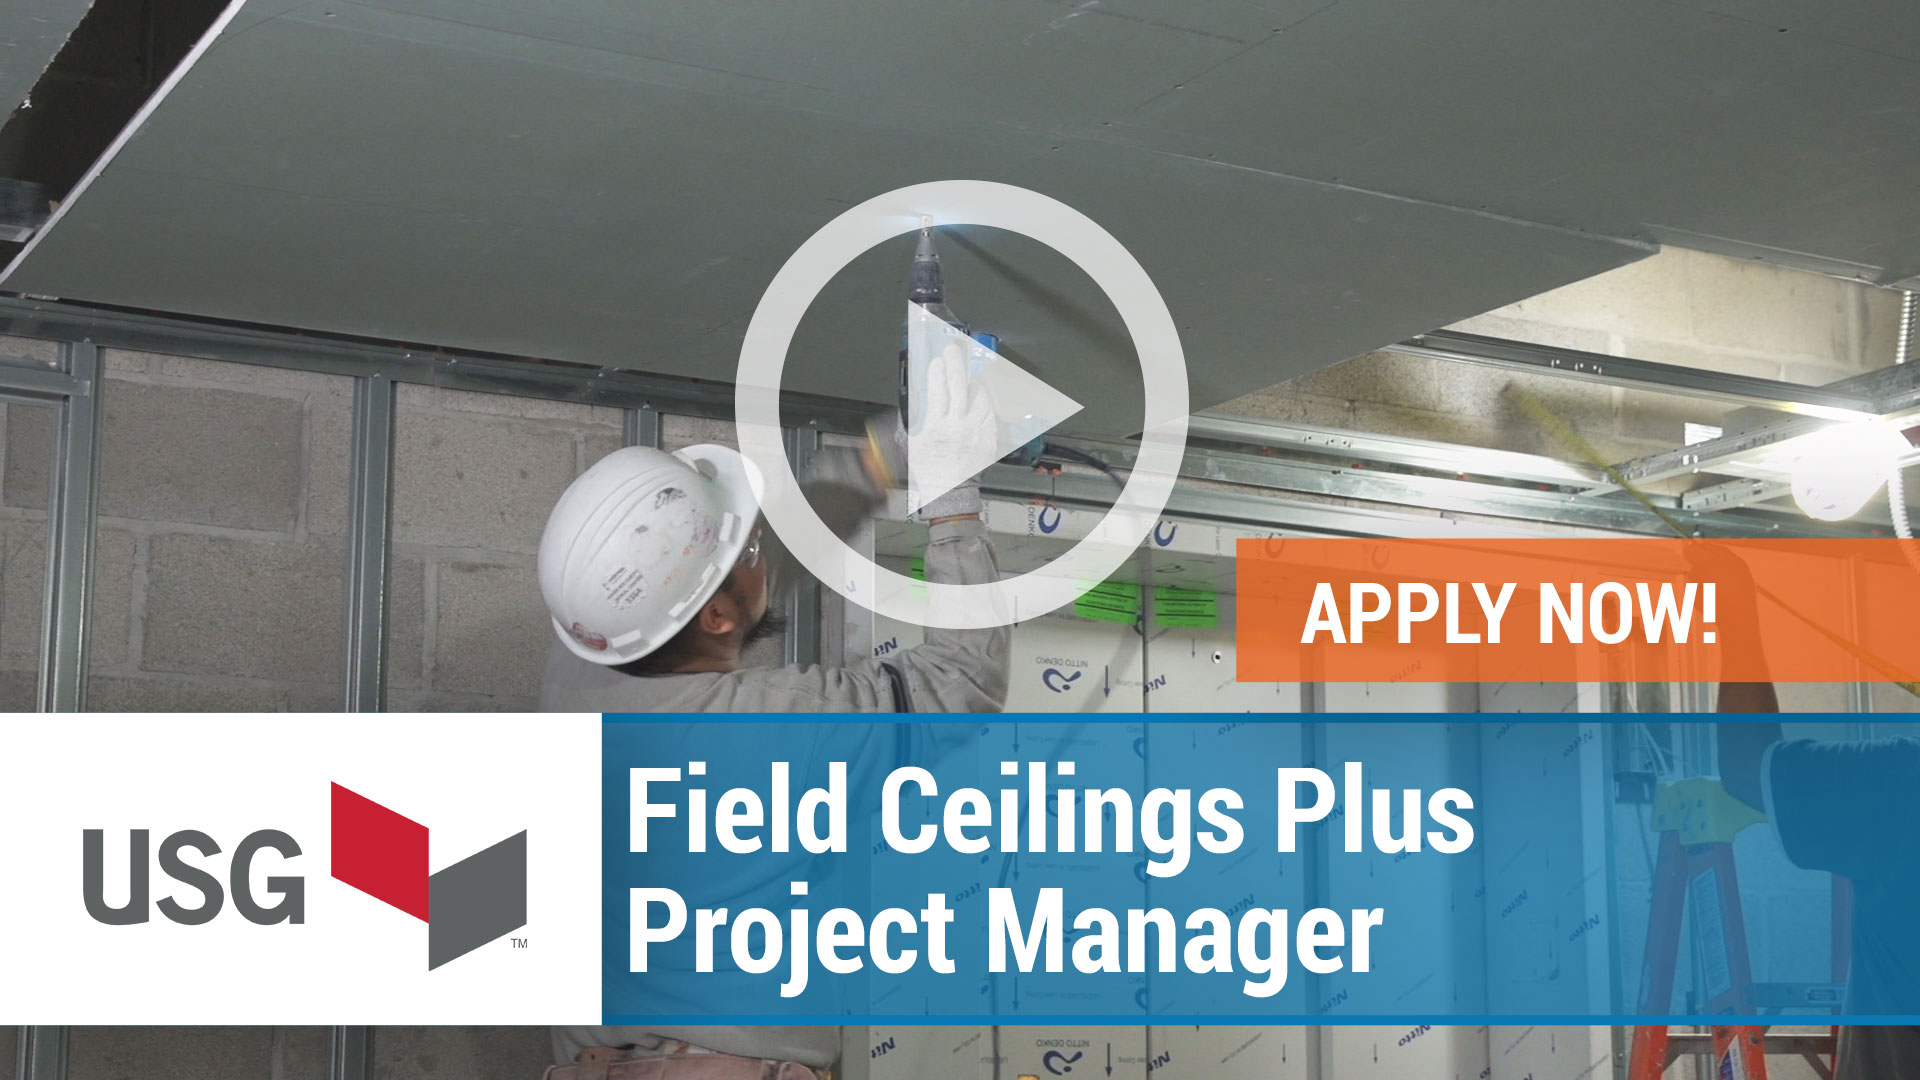 Watch our careers video for available job opening Field Ceilings Plus Project Manager in USA